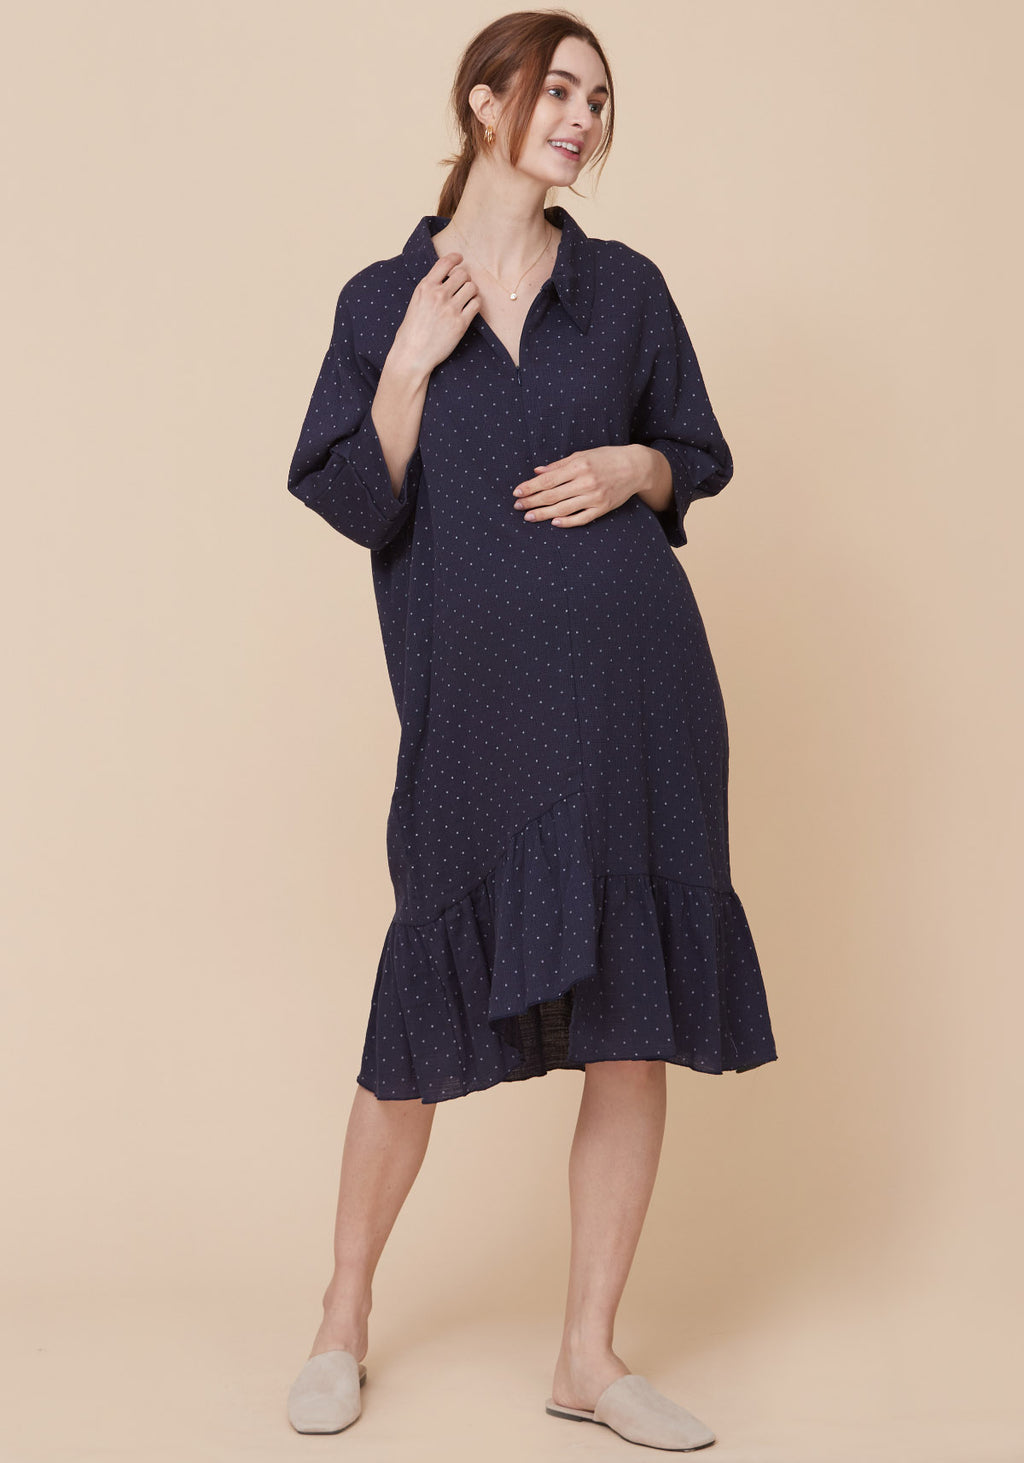 GAUZE ZIPPERED NURSING DRESS